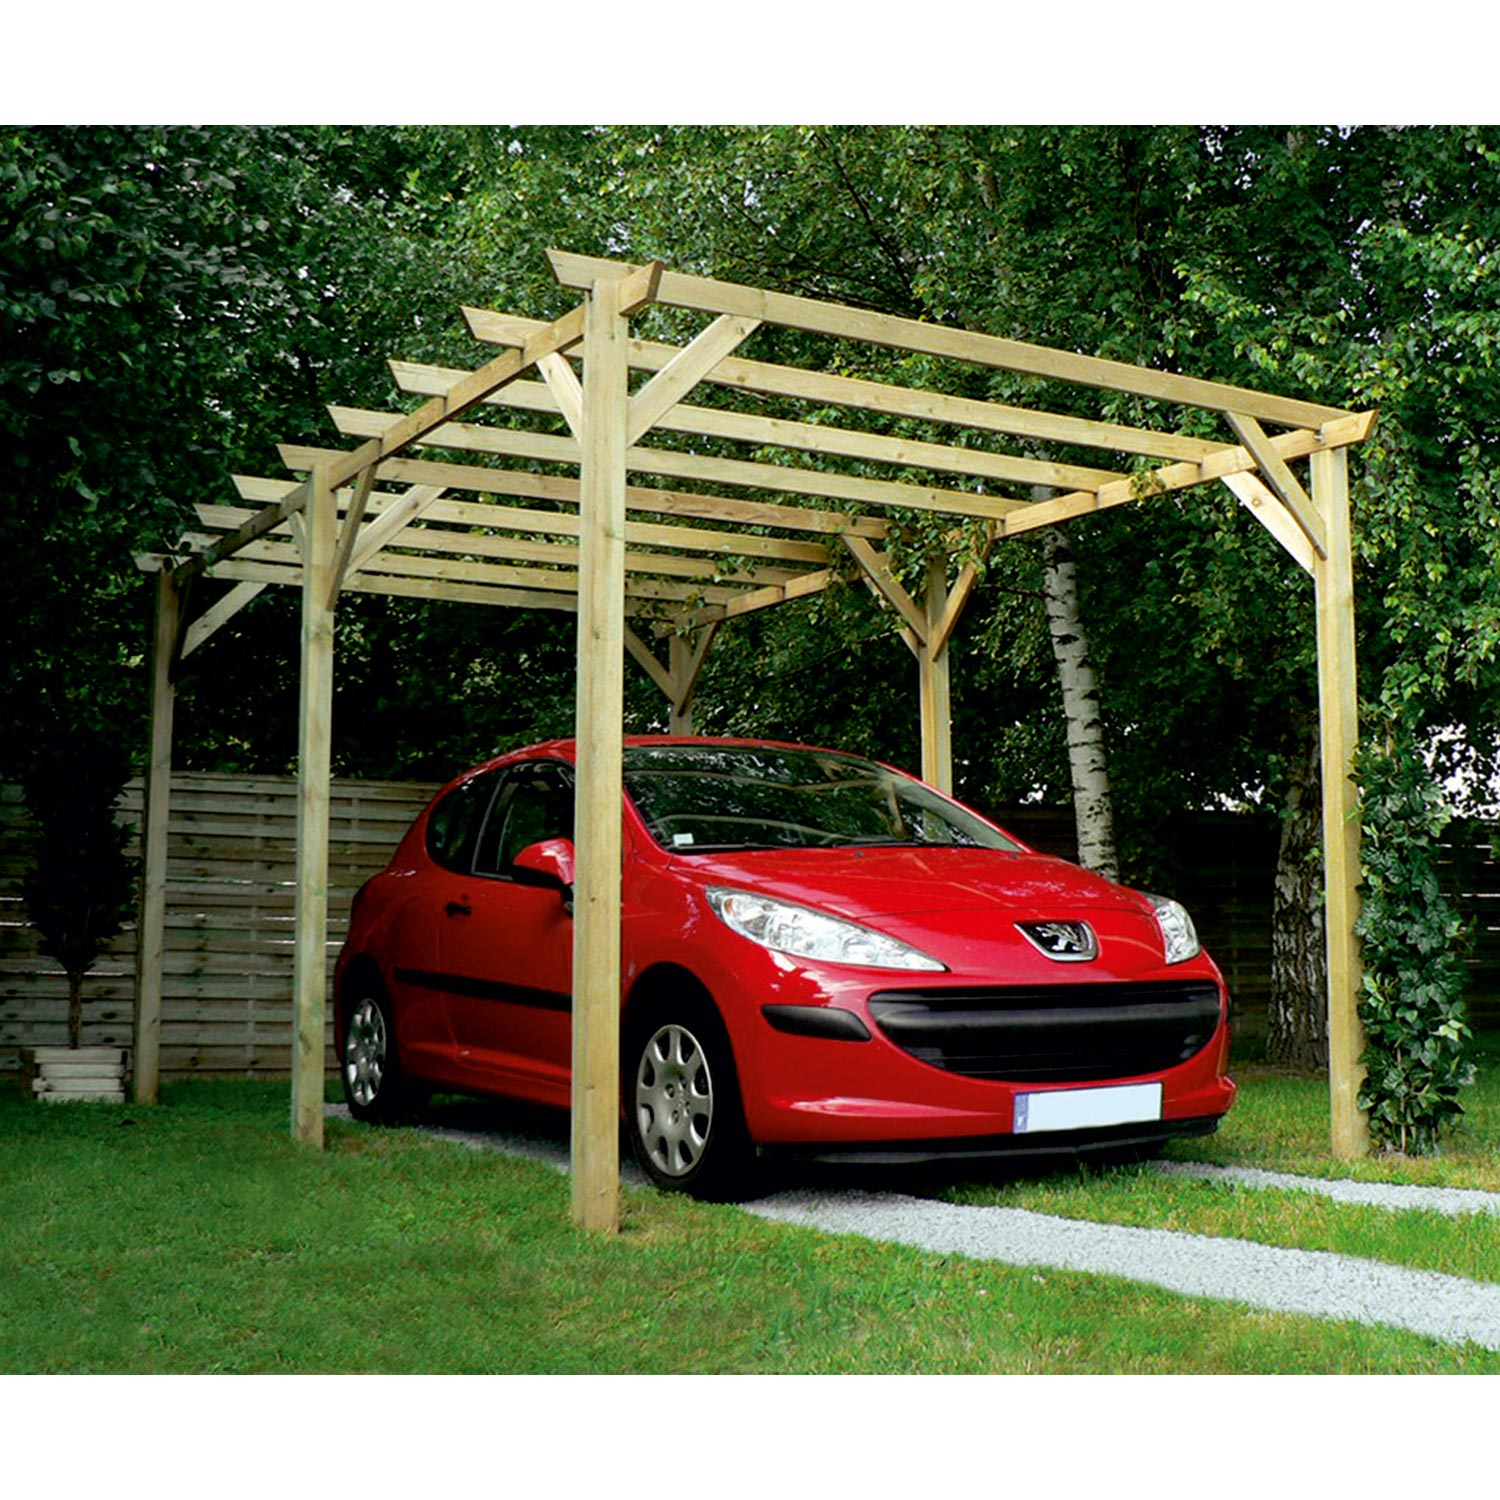 Carport bois maranello 1 voiture 15 m leroy merlin for Carport 1